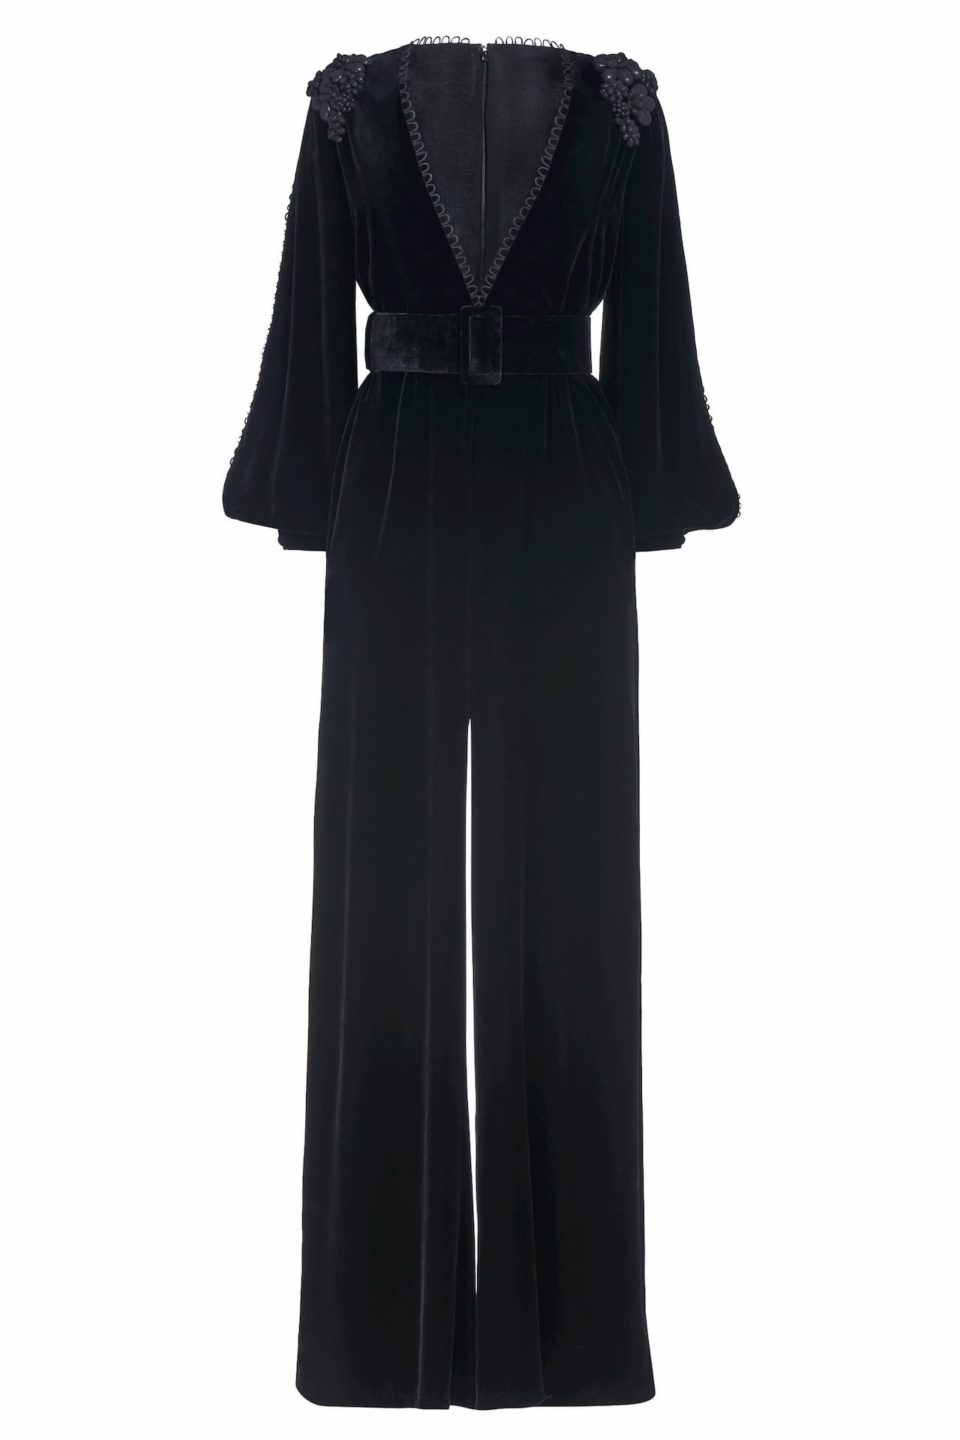 Nyx FW2027 black Silk Velvet Slit-Sleeve Jumpsuit with Shoulder Embellishment & Button-Loop Detail